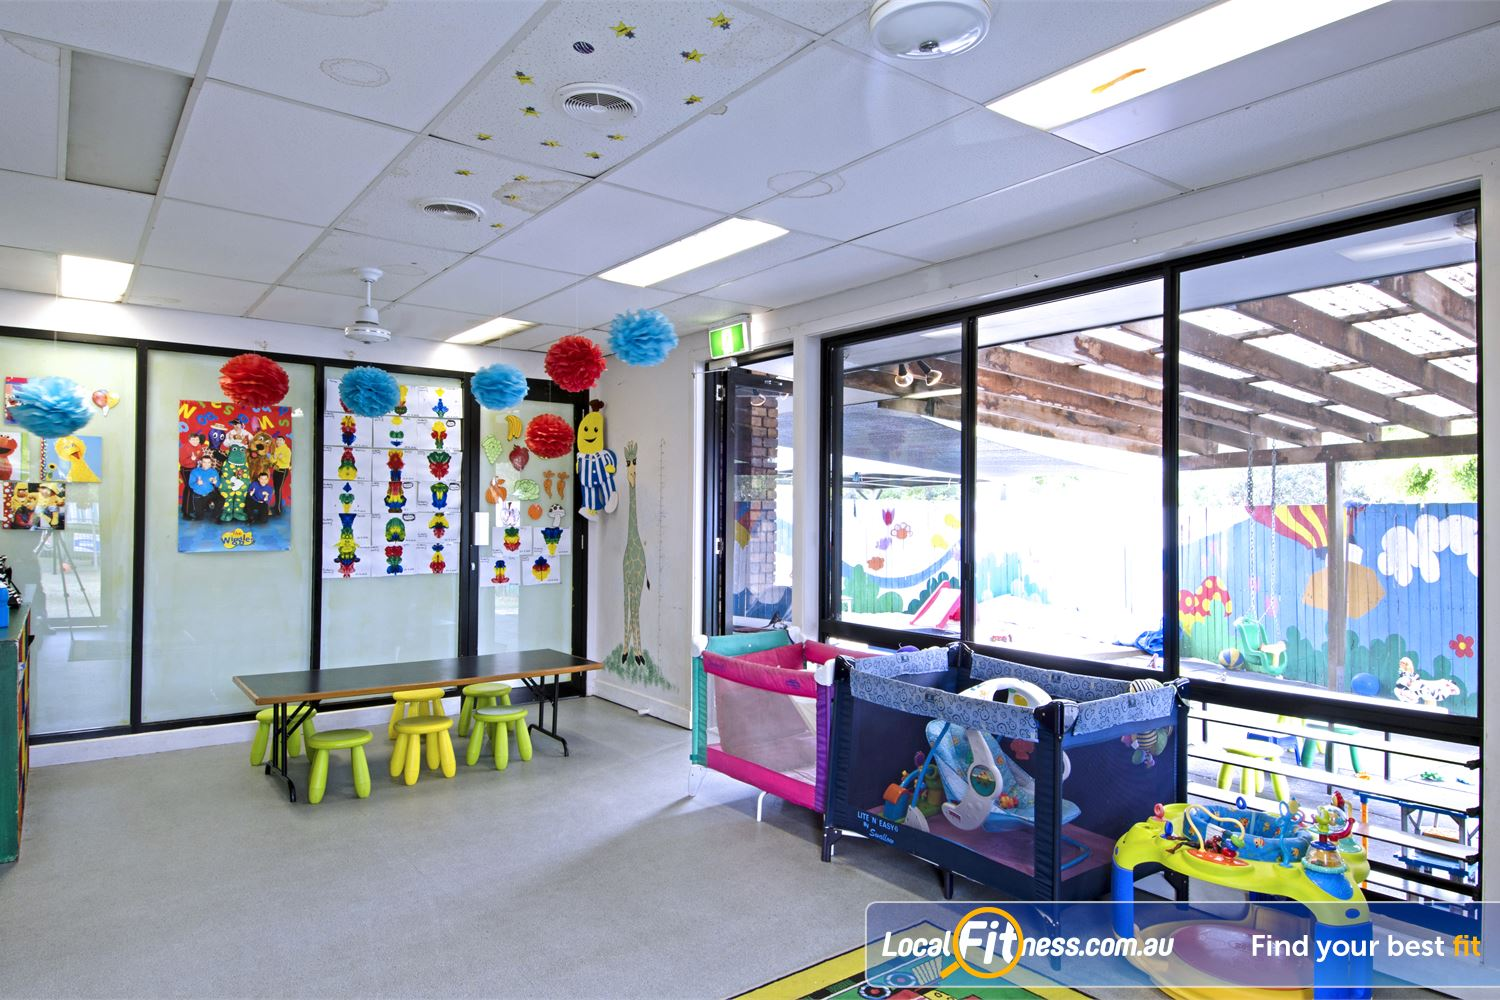 Goodlife Health Clubs Carseldine Complete peace of mind, you children will enjoy our indoor and outdoor child care activities.